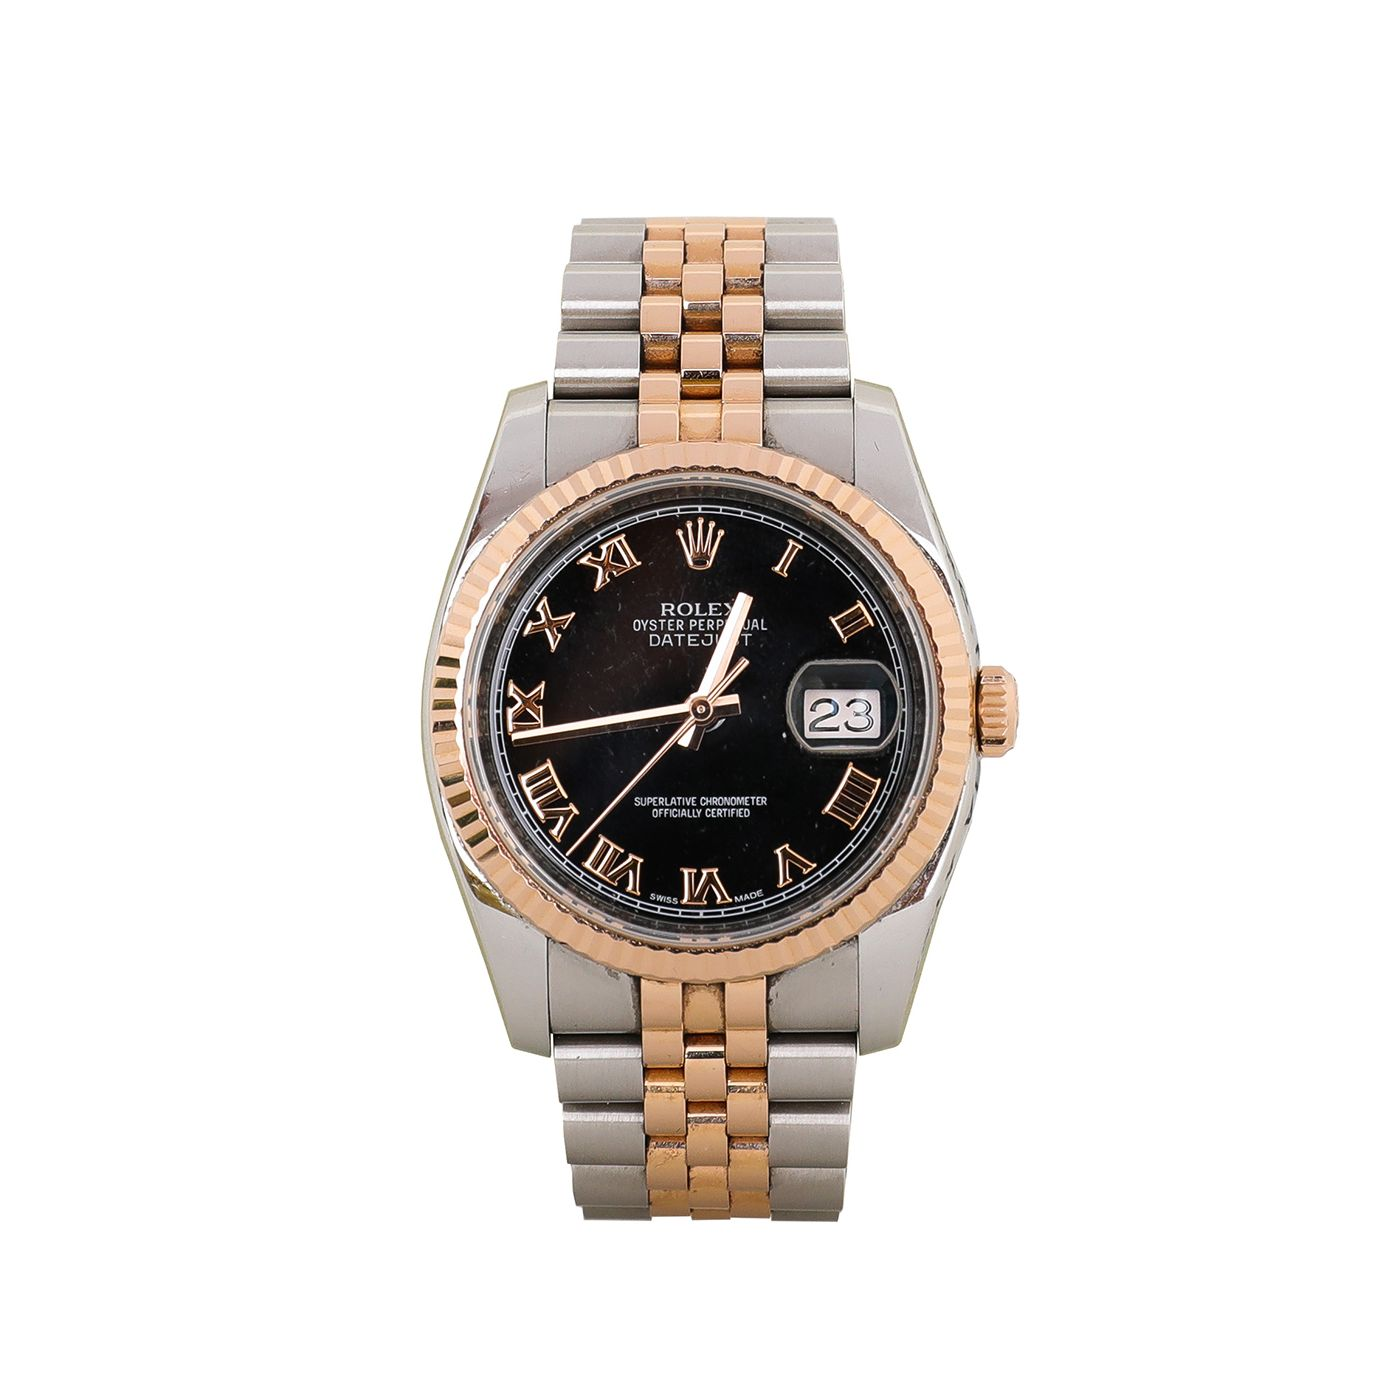 Rolex Datejust 18K Rose Gold Oyster Perpetual 36mm Watch